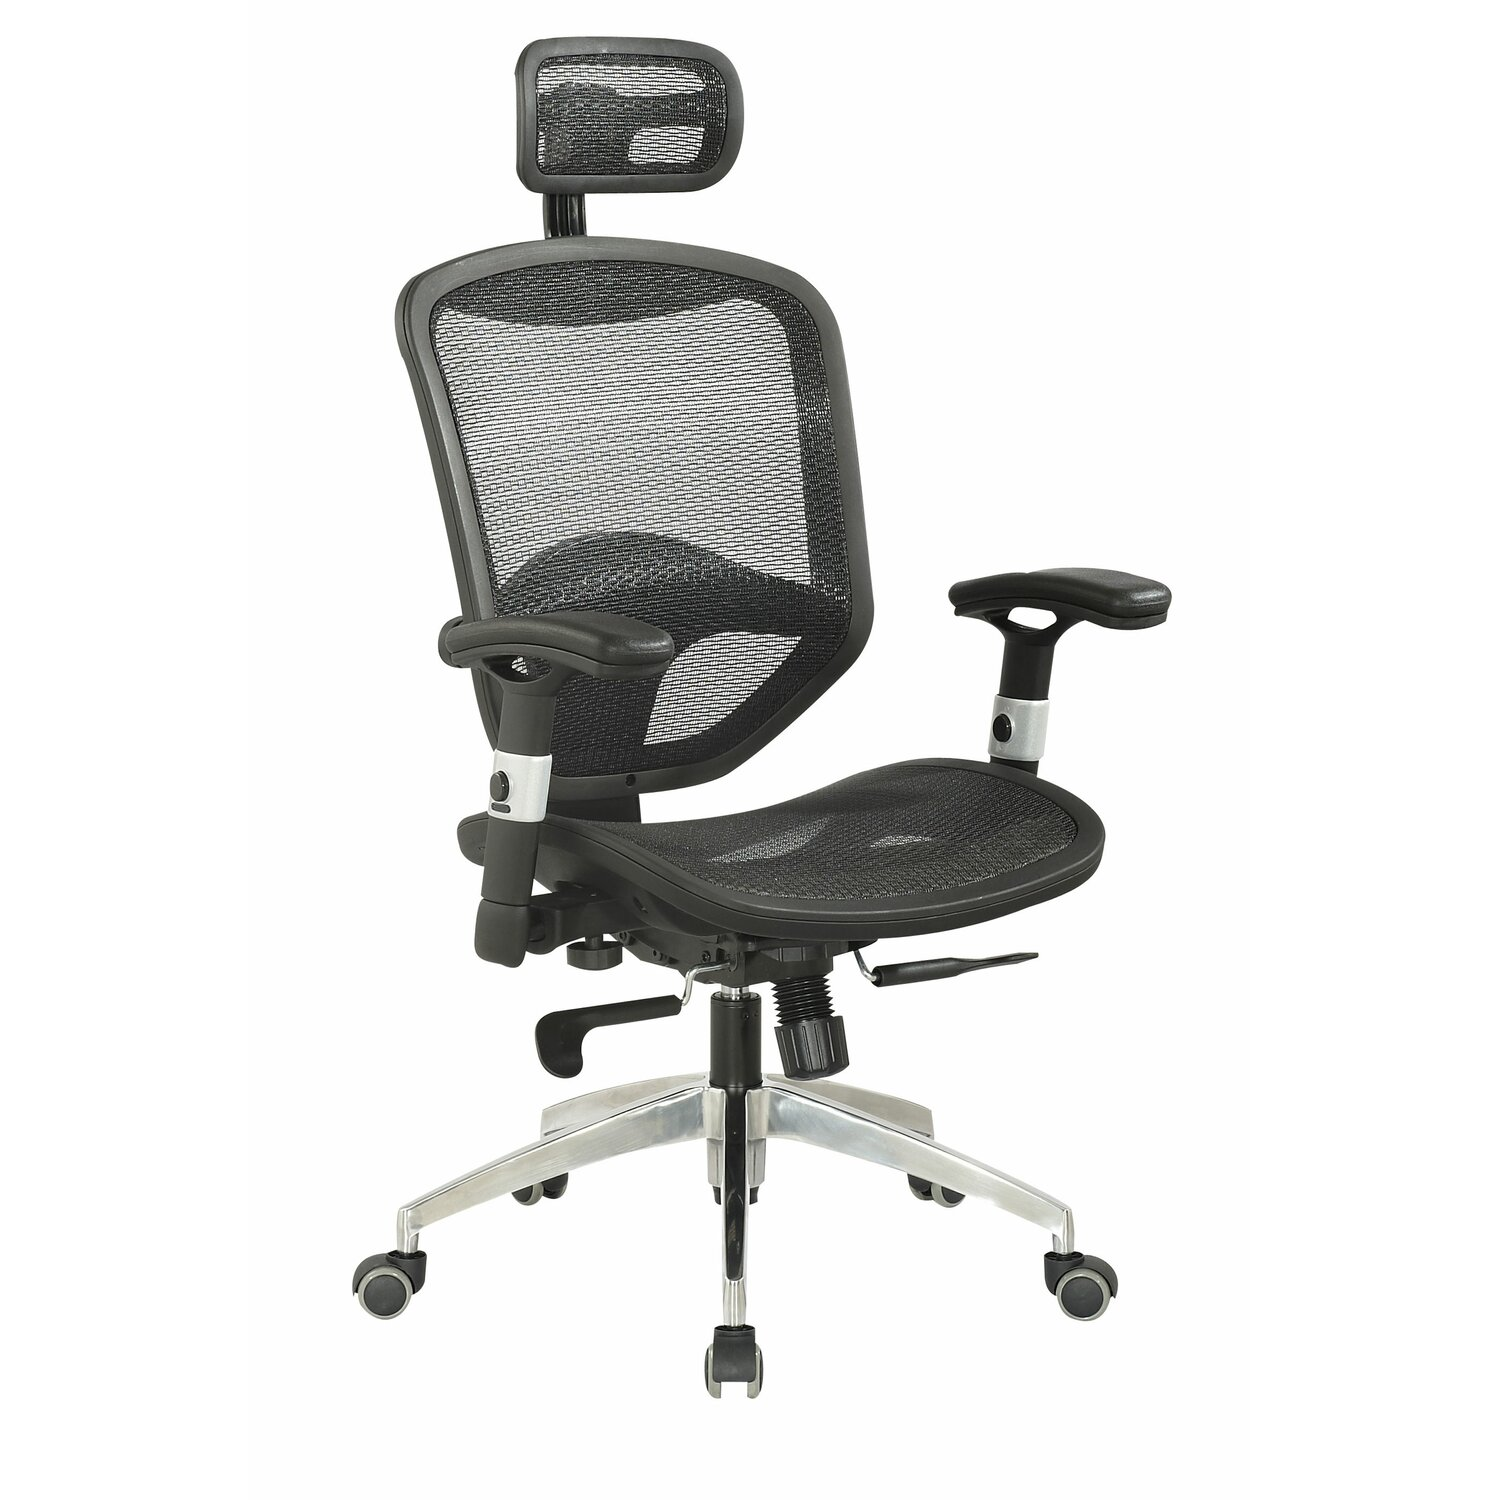 Headrest Attachment For Office Chair Office Chair With Headrest